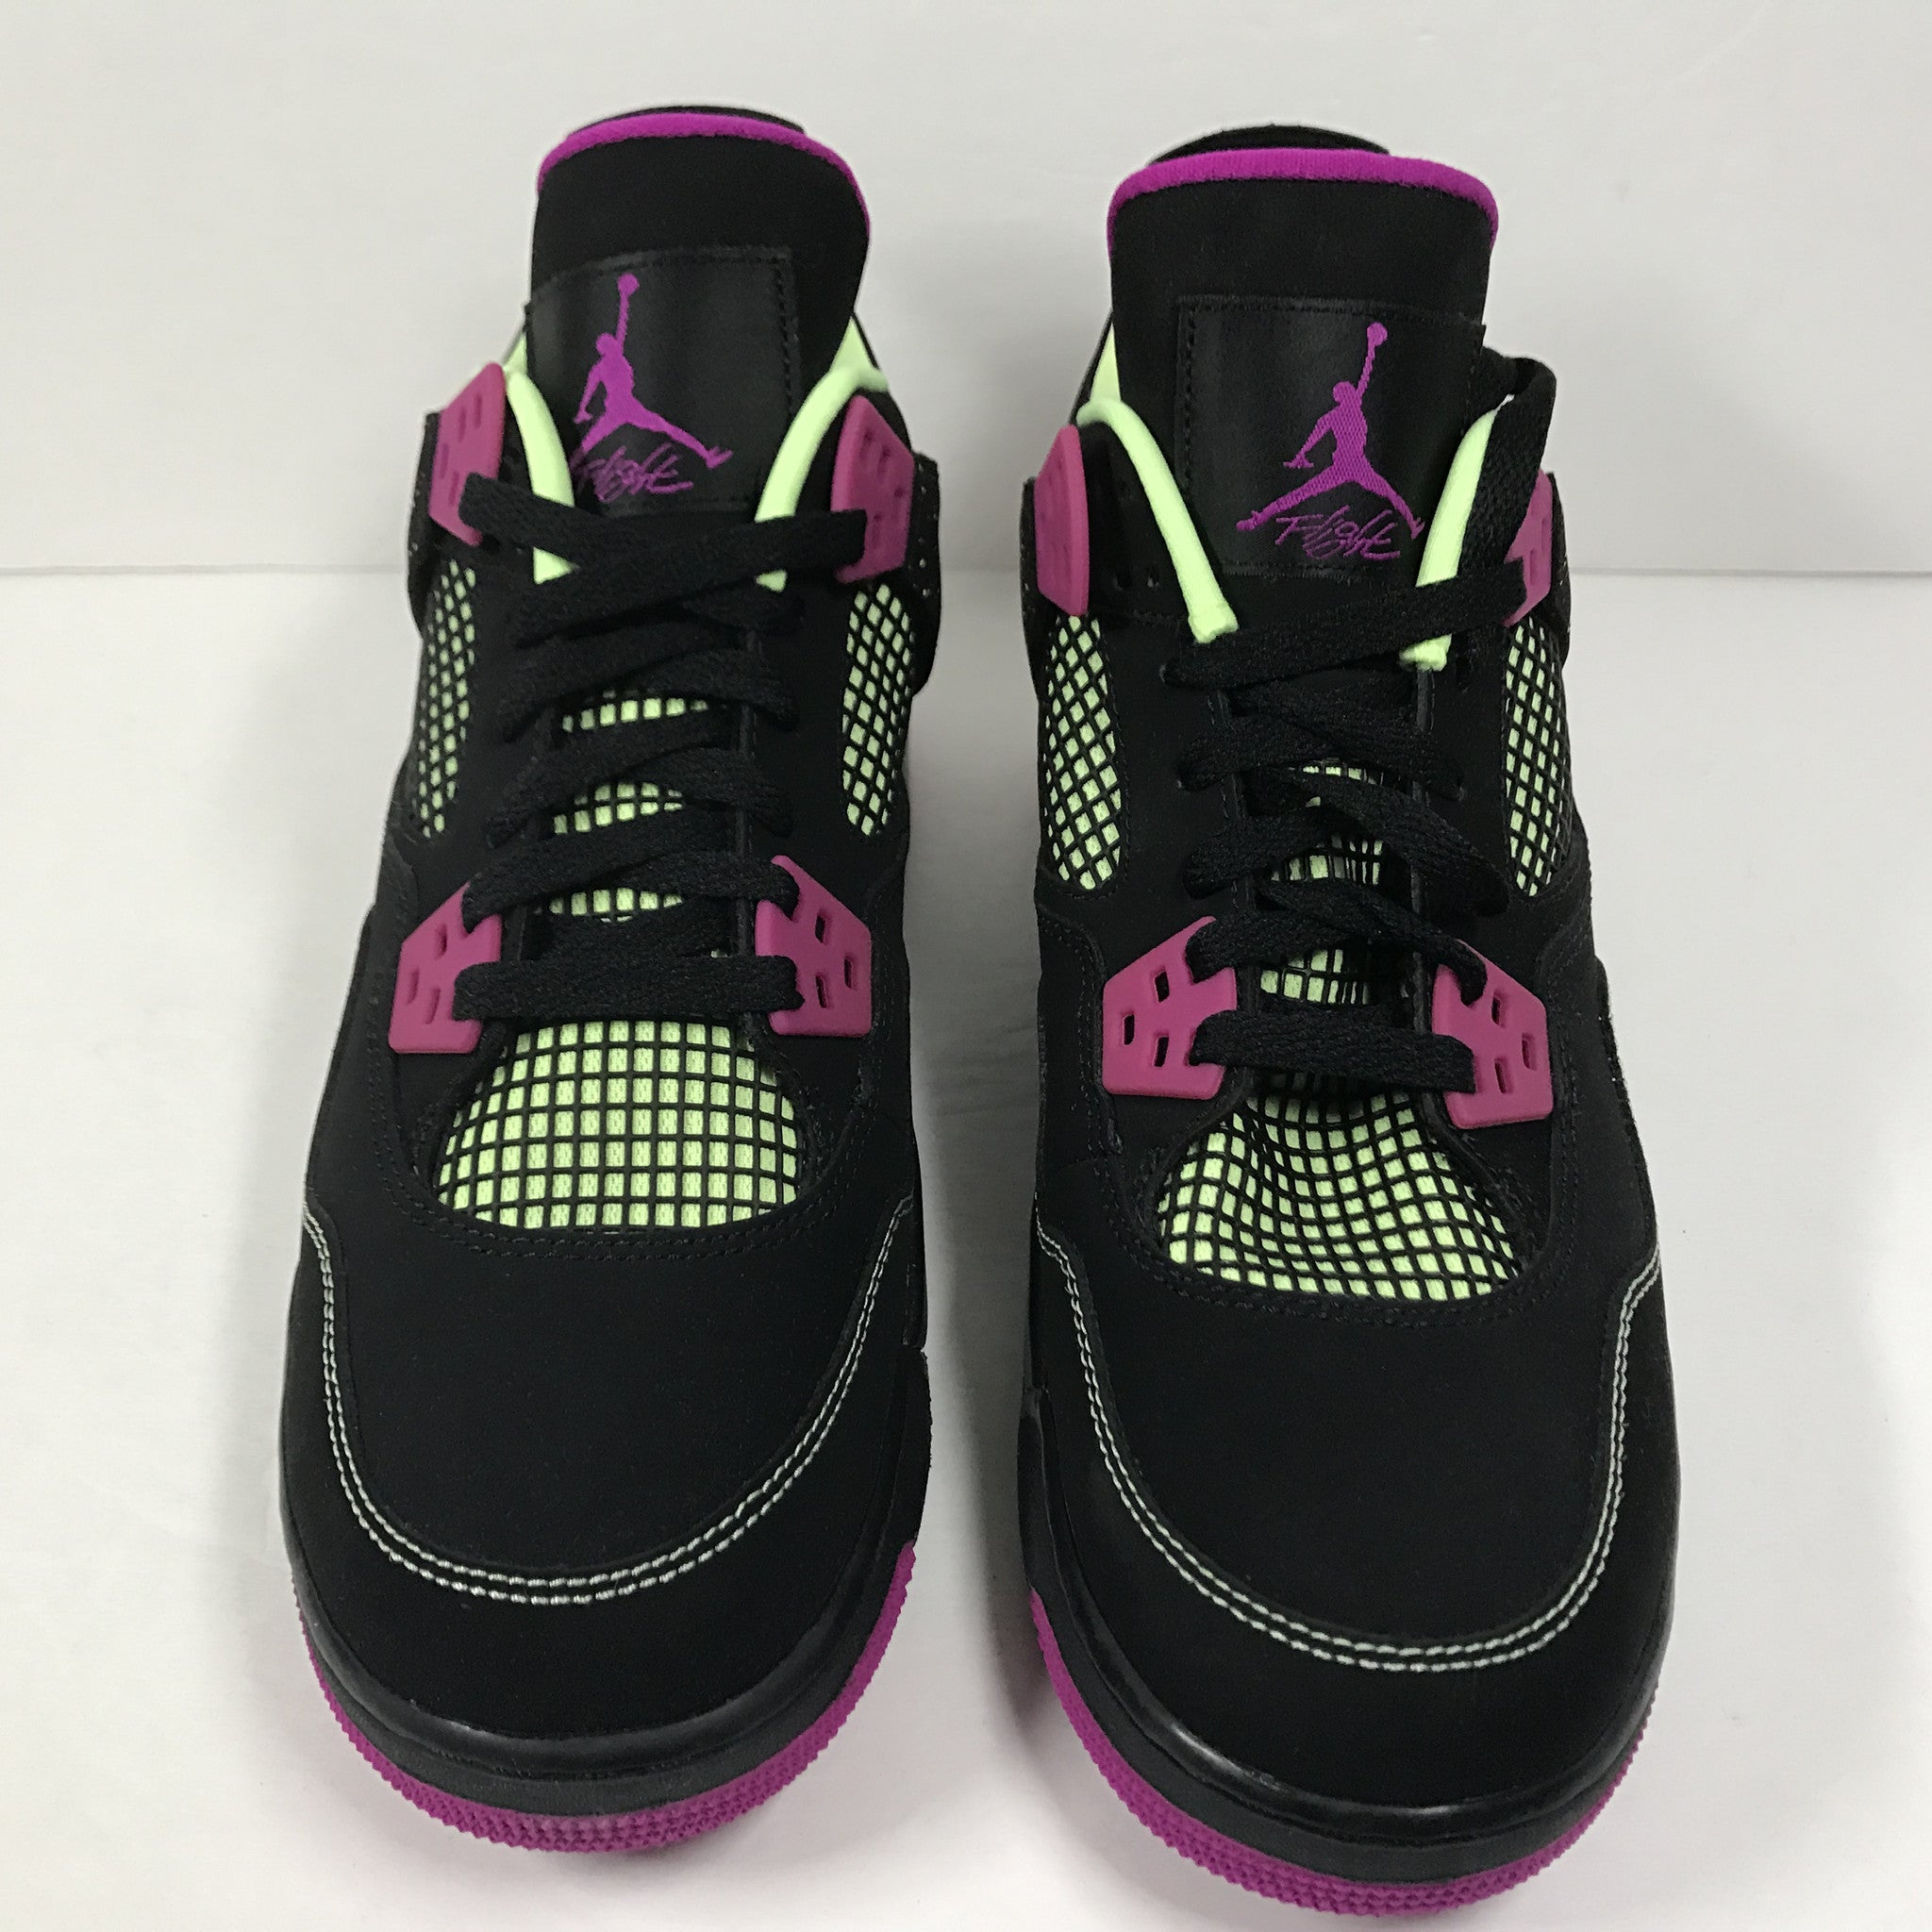 DS Nike Air Jordan 4 IV Retro 30th GG Black/Fuchscia Size 9Y - DOPEFOOT  - 3